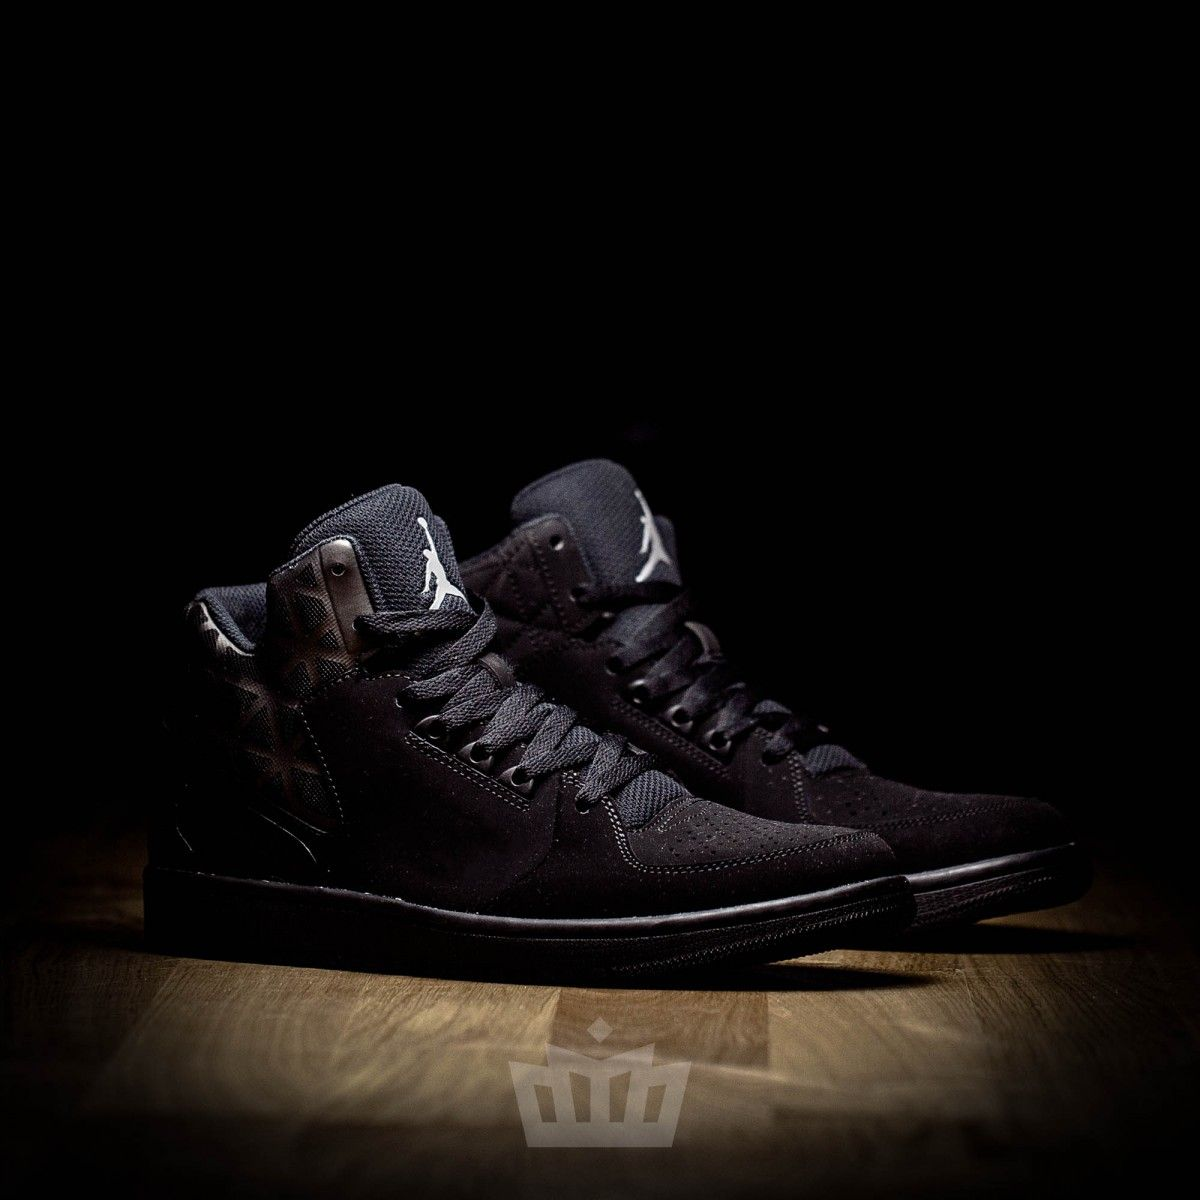 the best attitude 49874 2783f Nike Air Jordan 1 Flight 3 triple black 706954-010 - Air Jordan - Shoes -  ATAF